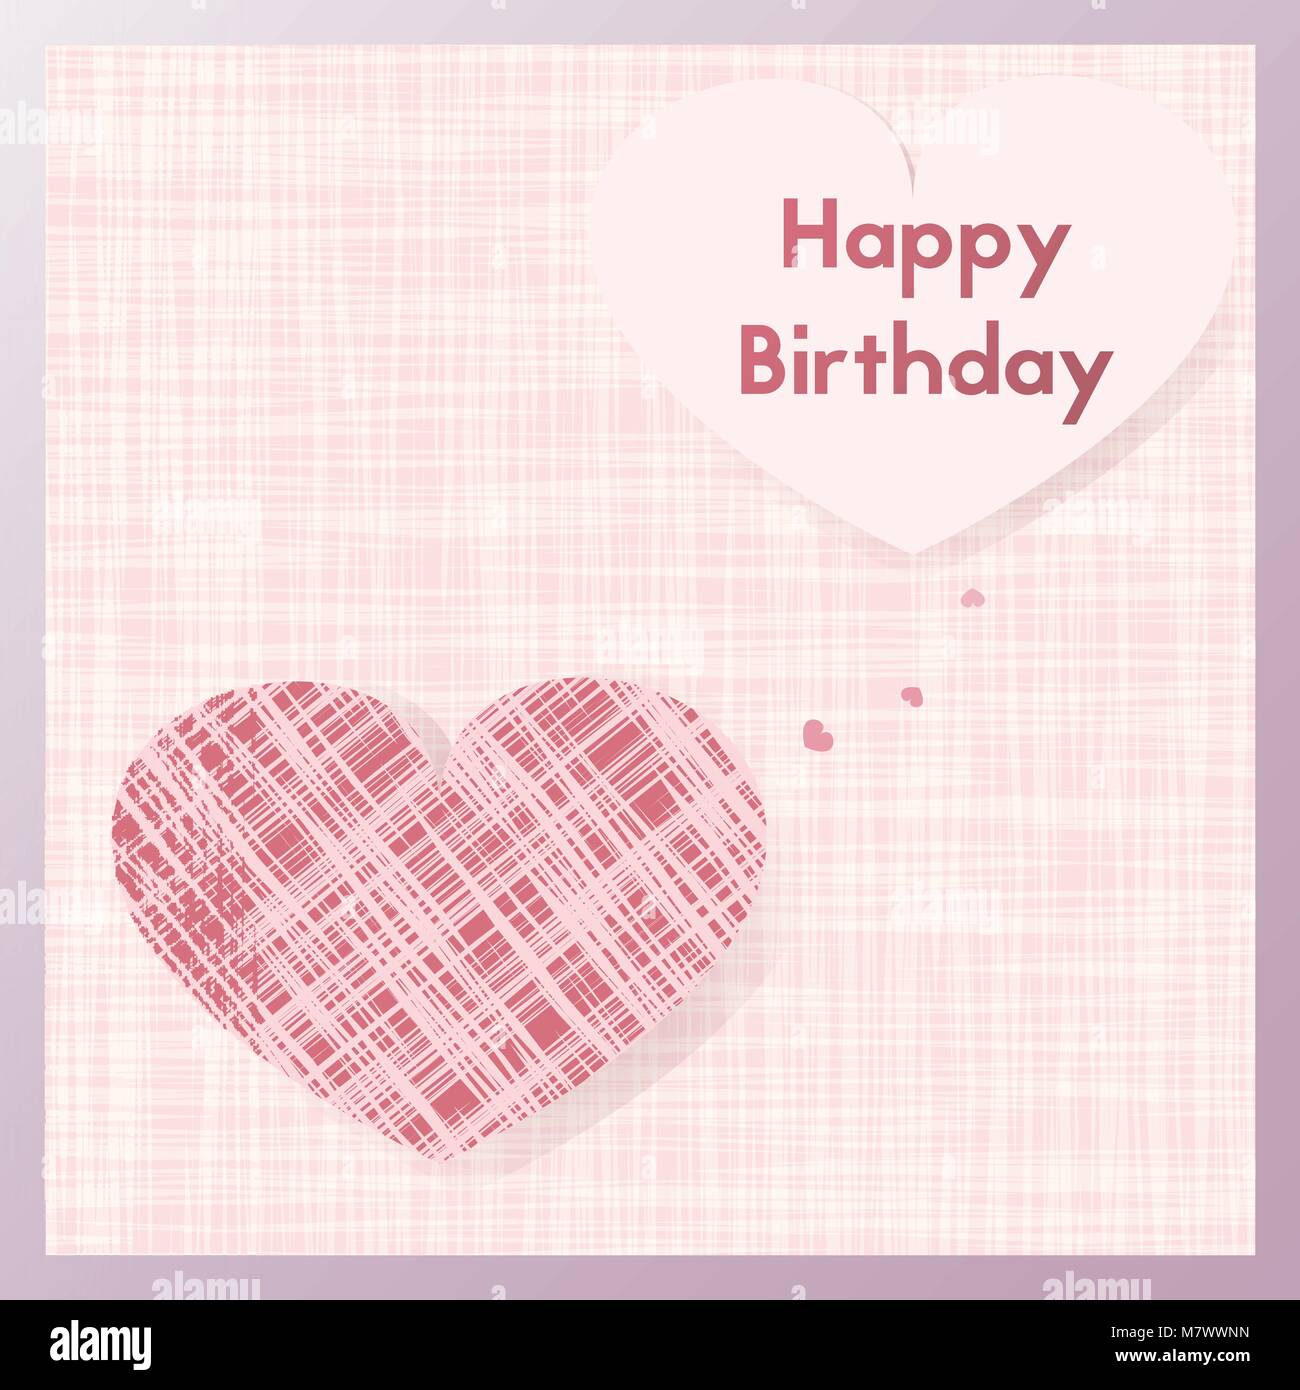 Birth Gift Greeting Card For Lovers Postcard In Pastel Pink Vector Illustration Ecard Textiles The Shape Of A Heart Happy Birthday